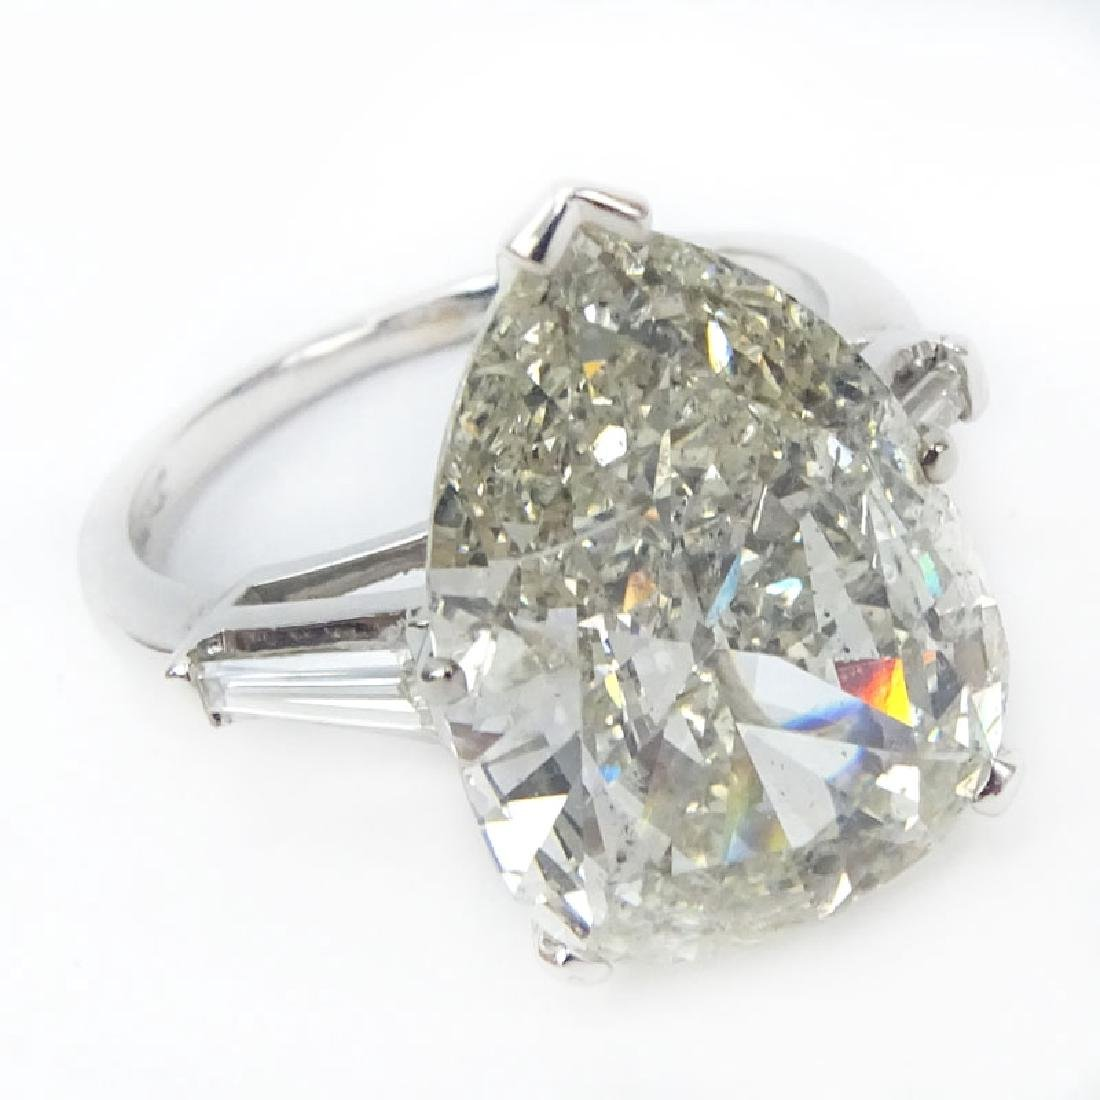 Approx. 6.32 Carat Pear Shape Diamond and Platinum